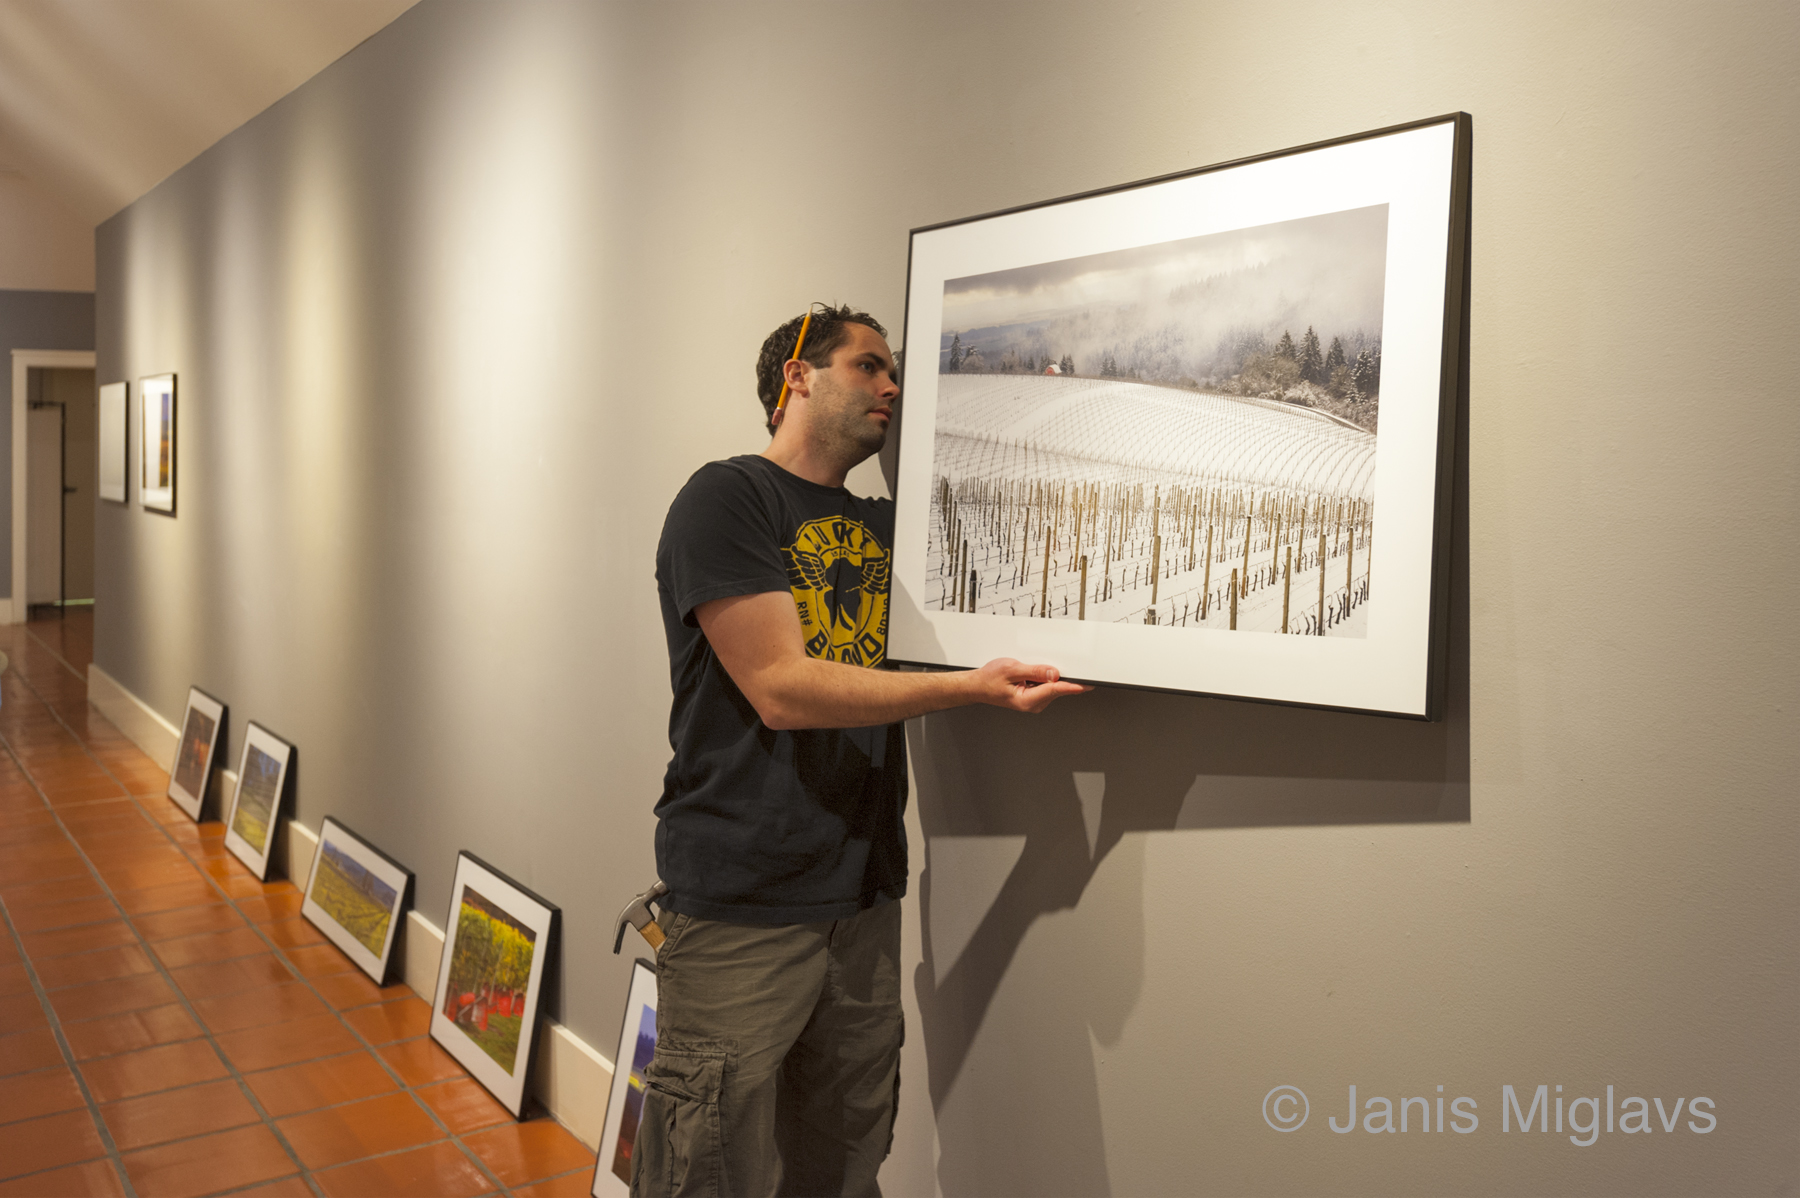 Framing Tip - For his gallery shows as well as many home and corporate installations, Janis prints the fine art images with a 3 inch white border. This gives the appearance of a matted photograph. Janis can do this for your prints for a nominal charge.